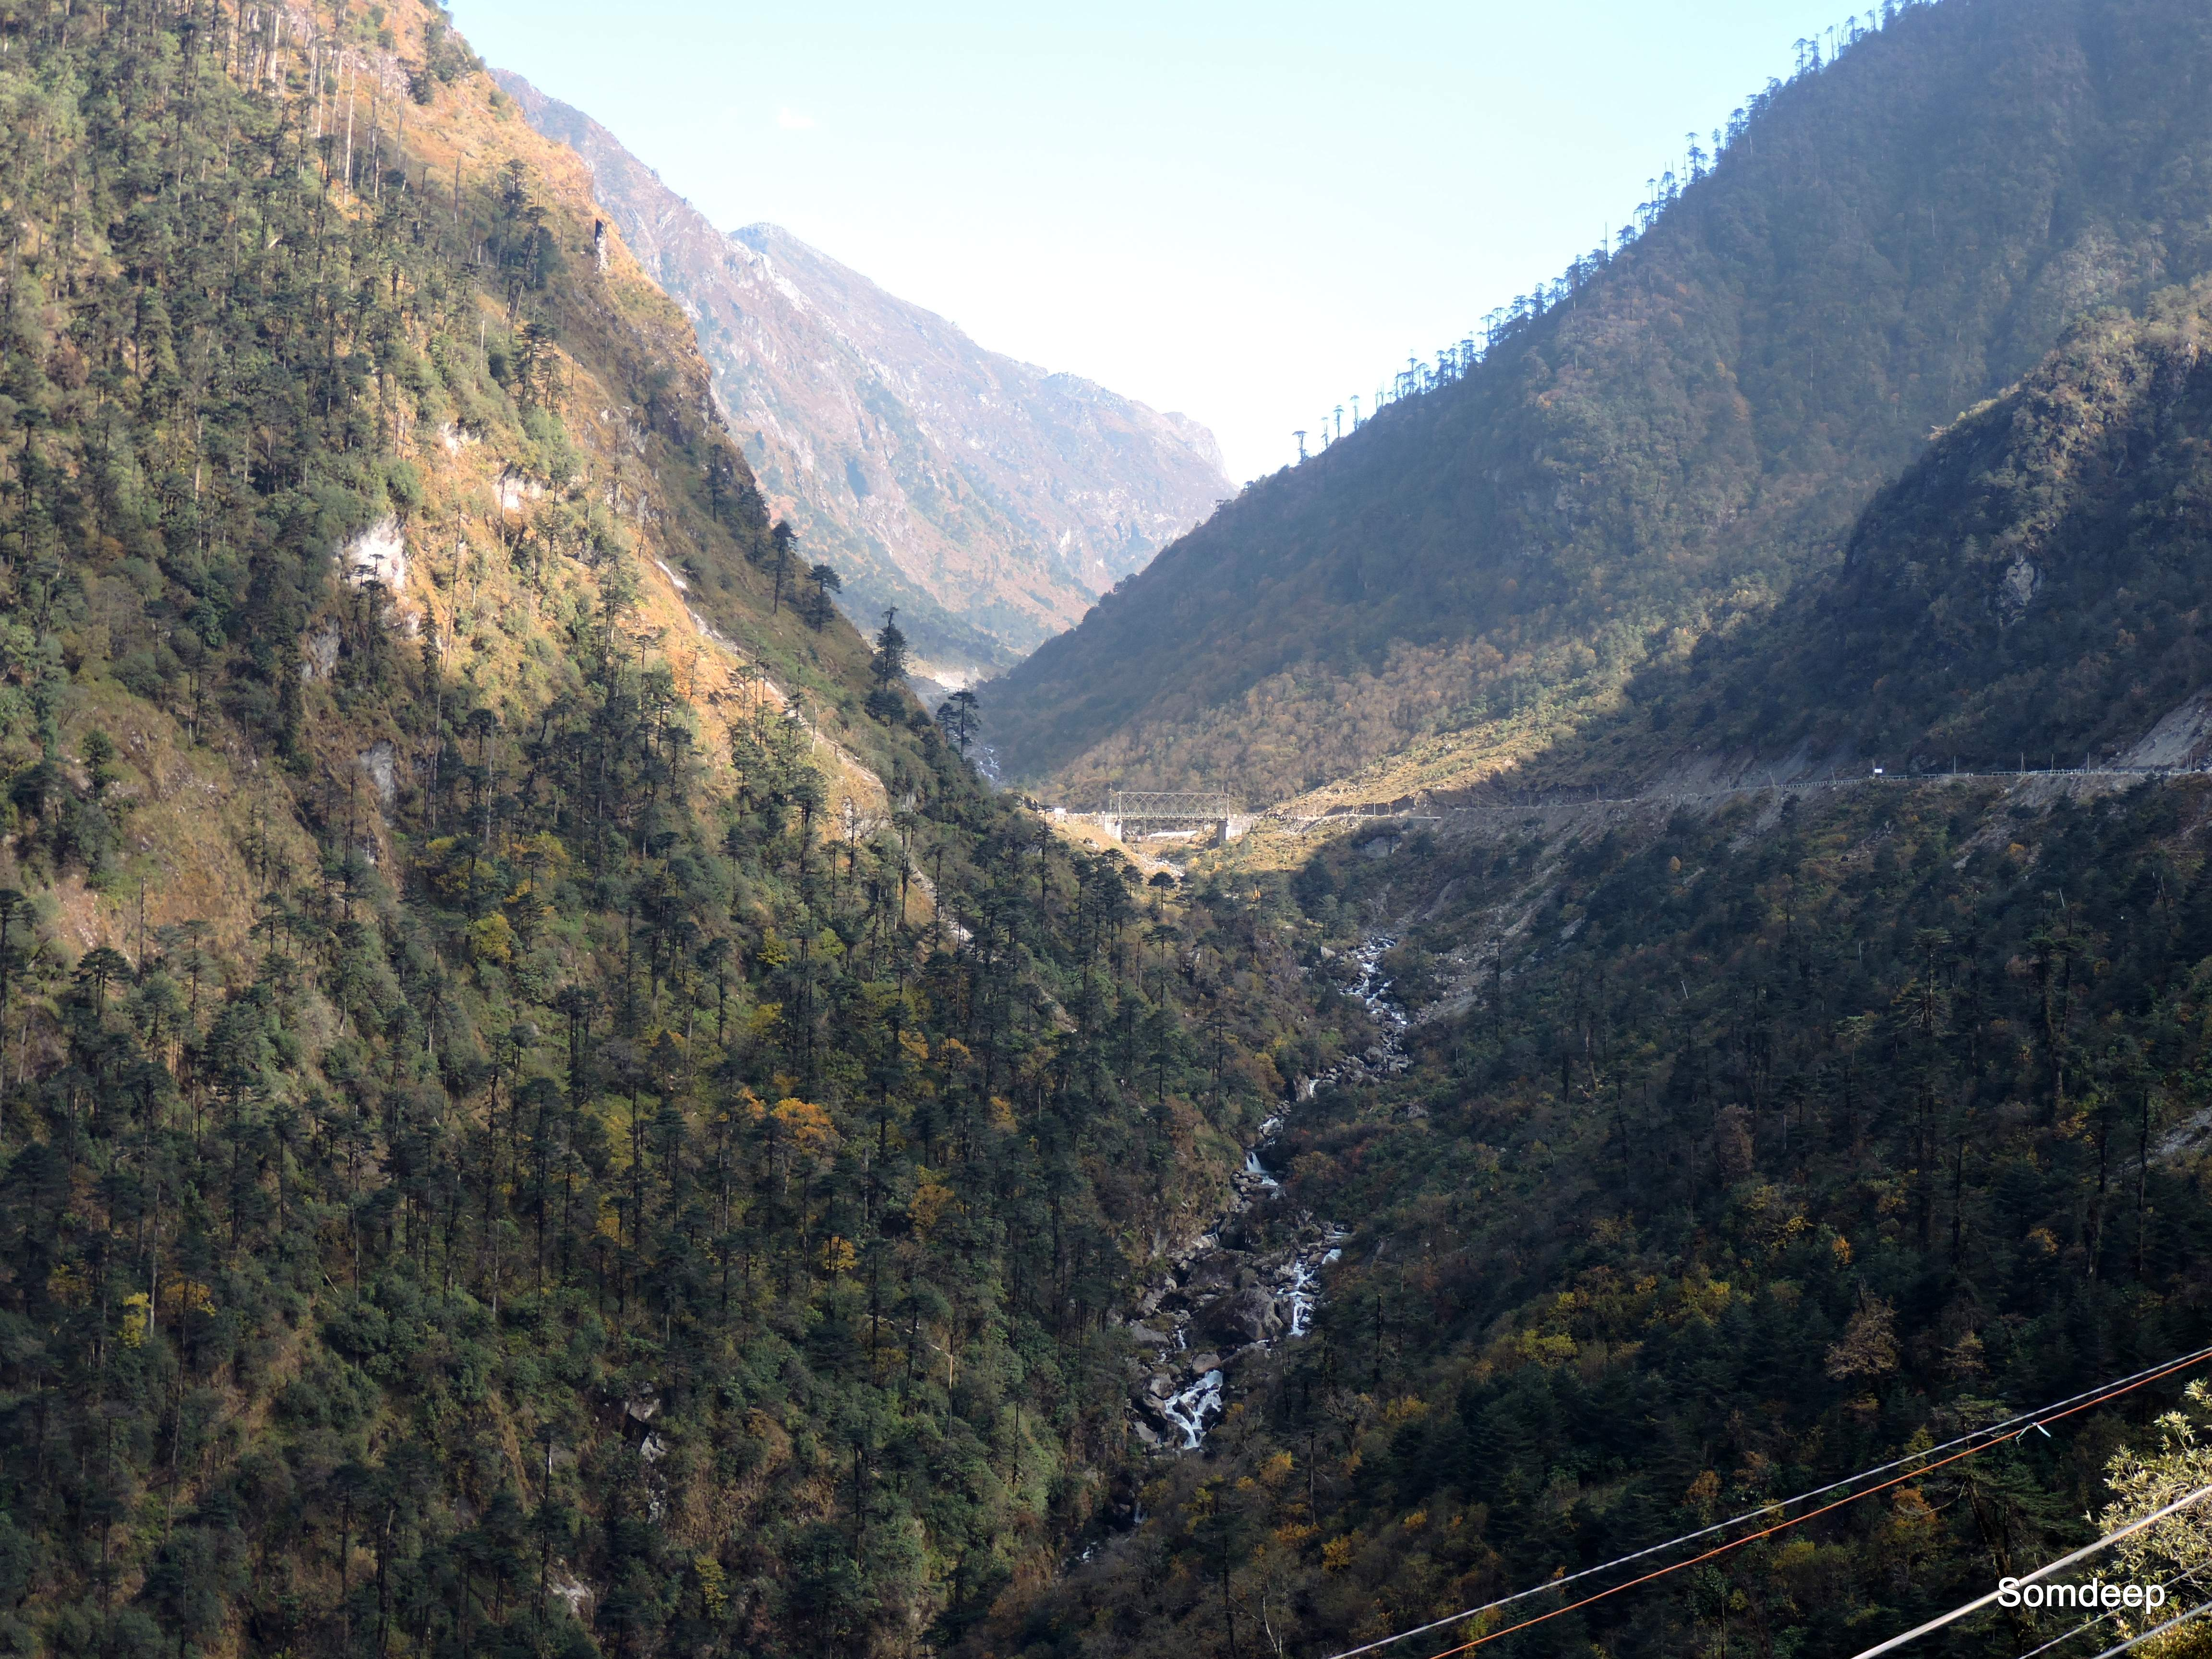 Pine forests, streams- alleys through the Himalayas